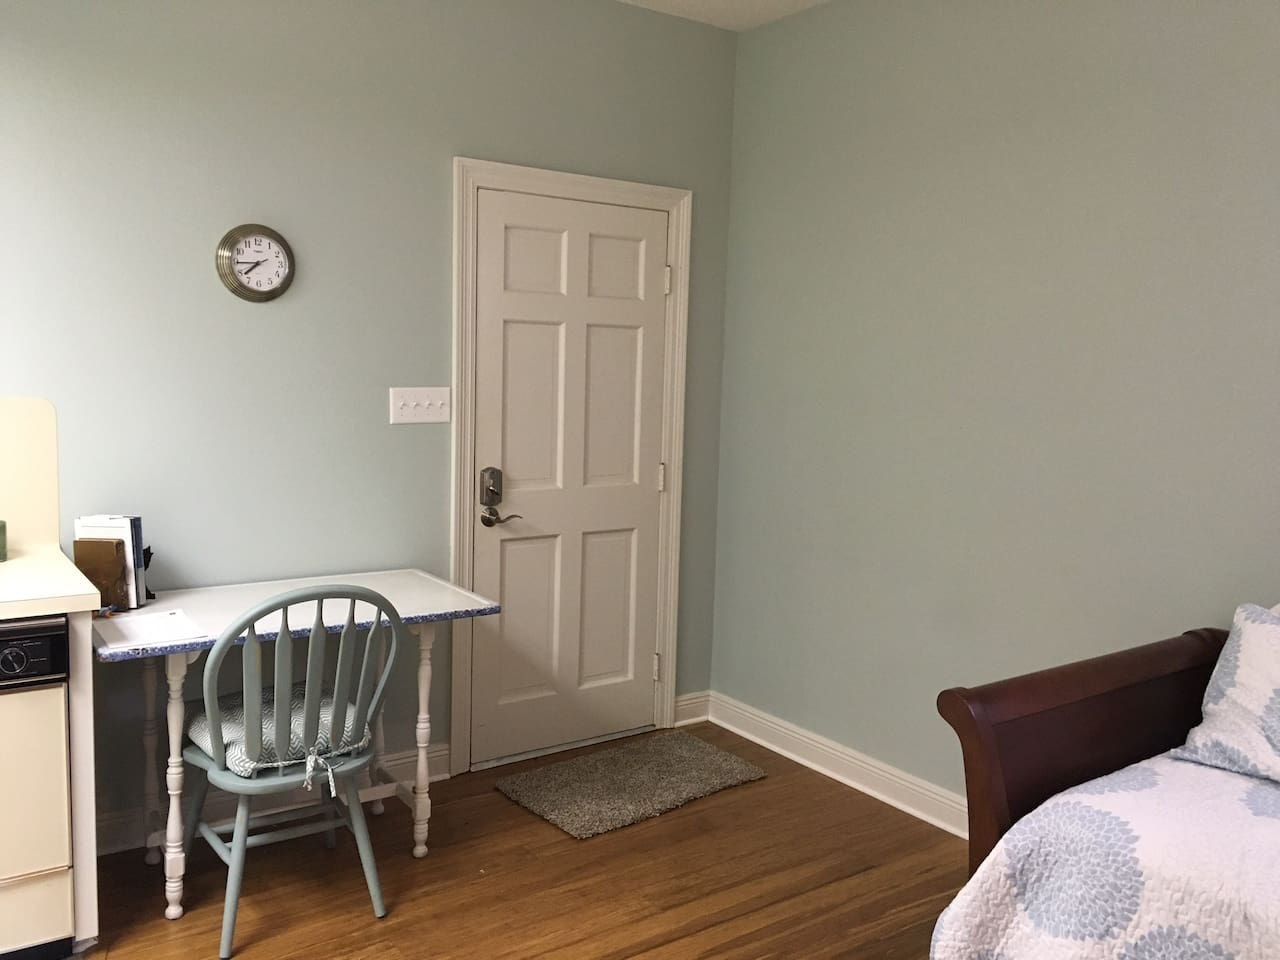 Private entrance with keyless entry; desk/table